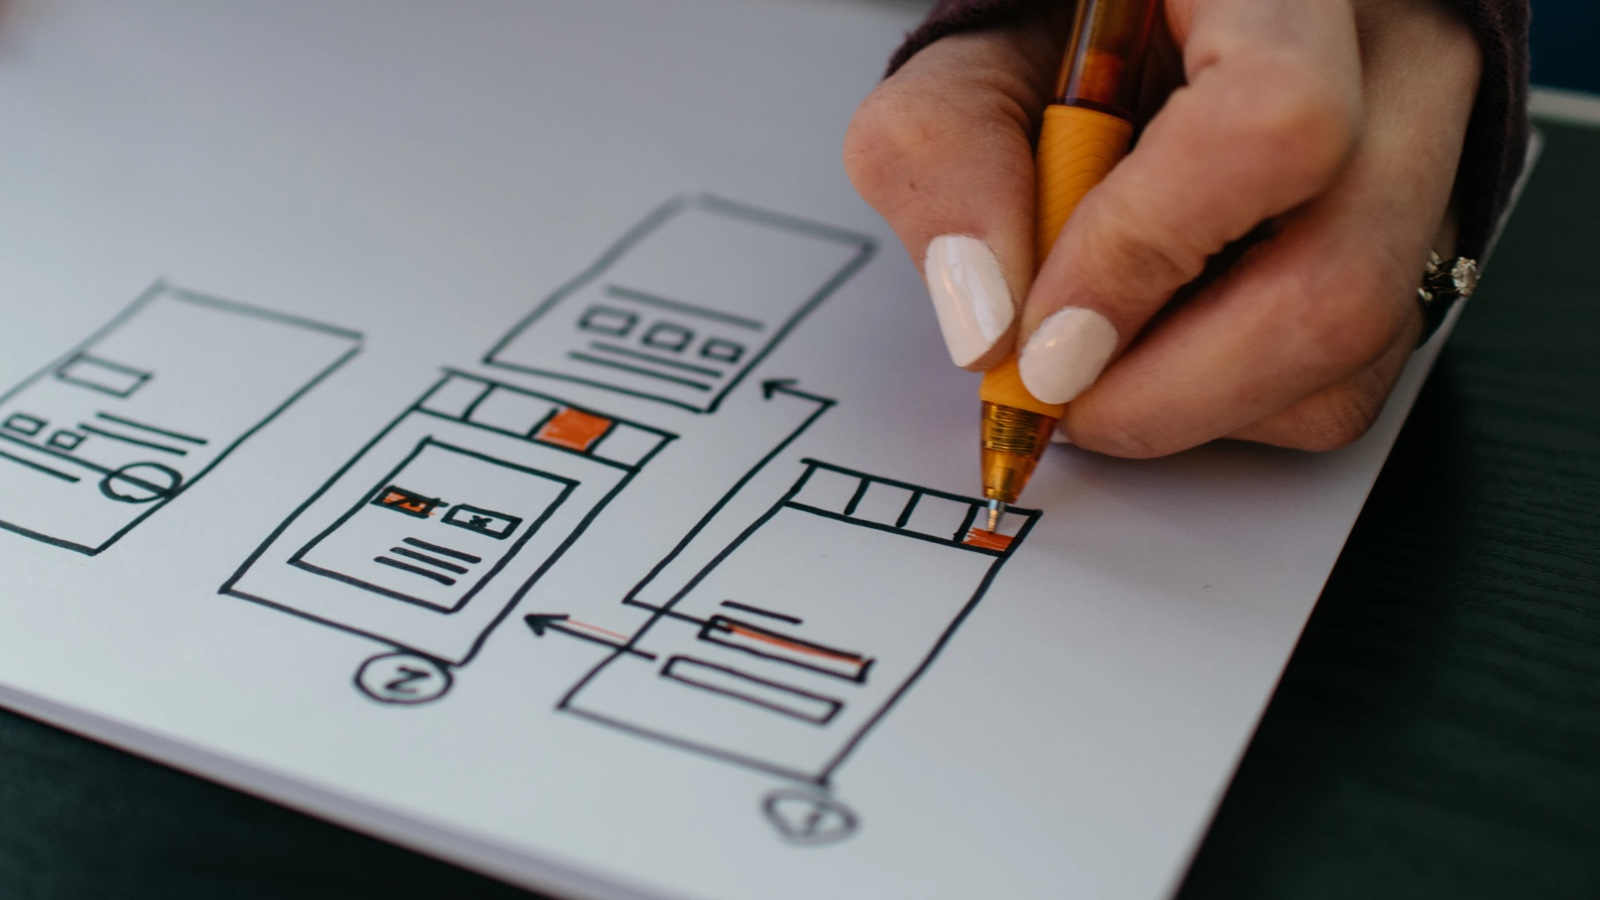 Wireframes done by the clients are just as good as the ones done by UX designers